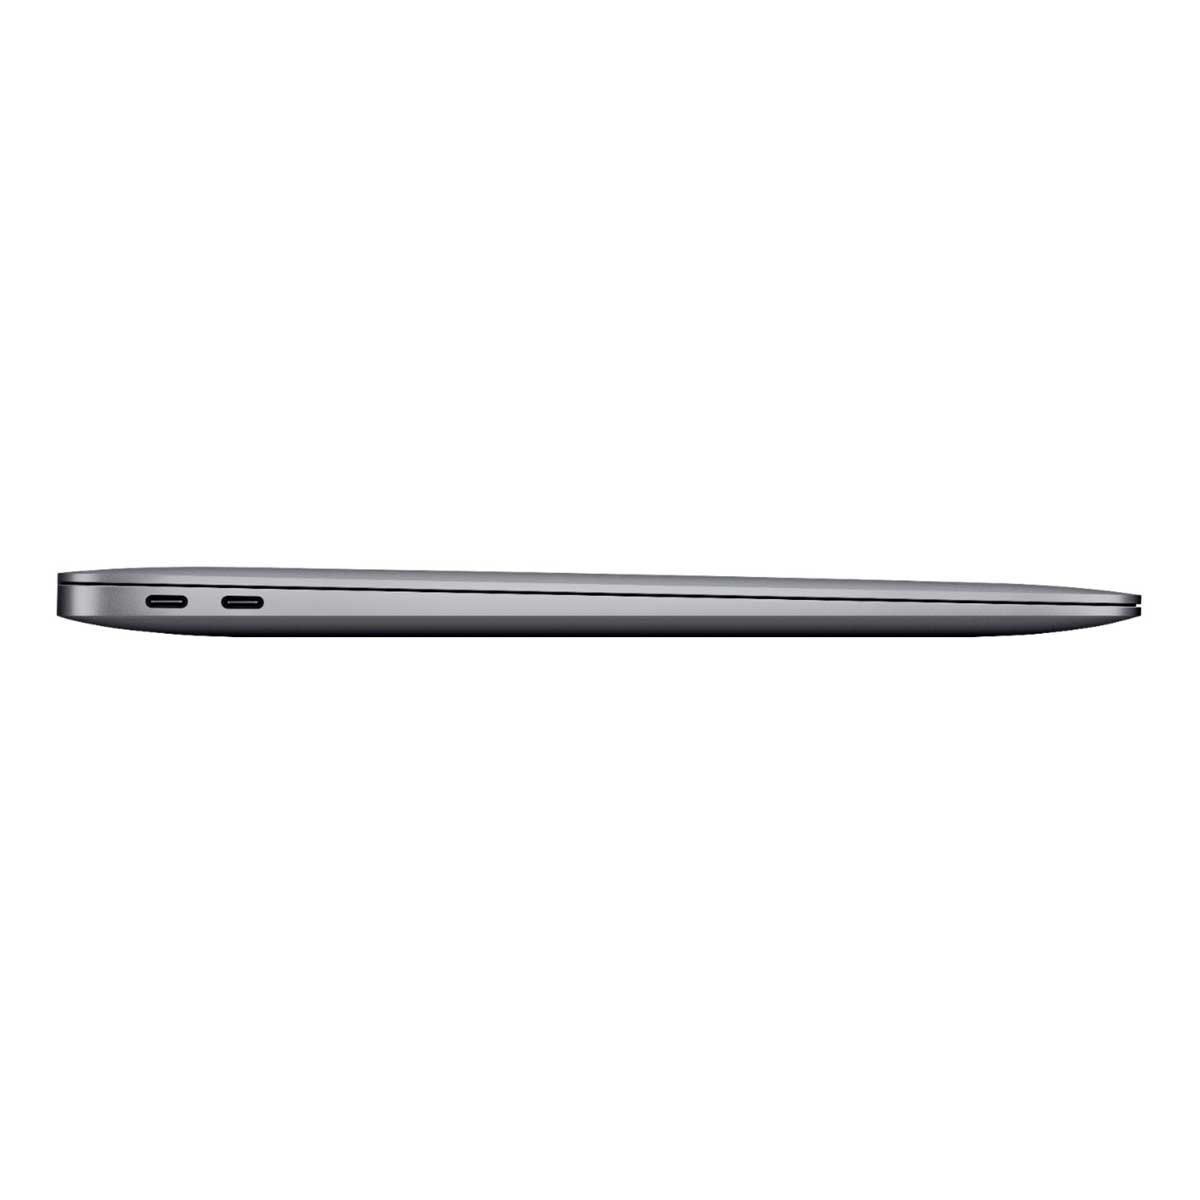 """Picture of APPLE 13.3"""" MACBOOK AIR LAPTOP"""